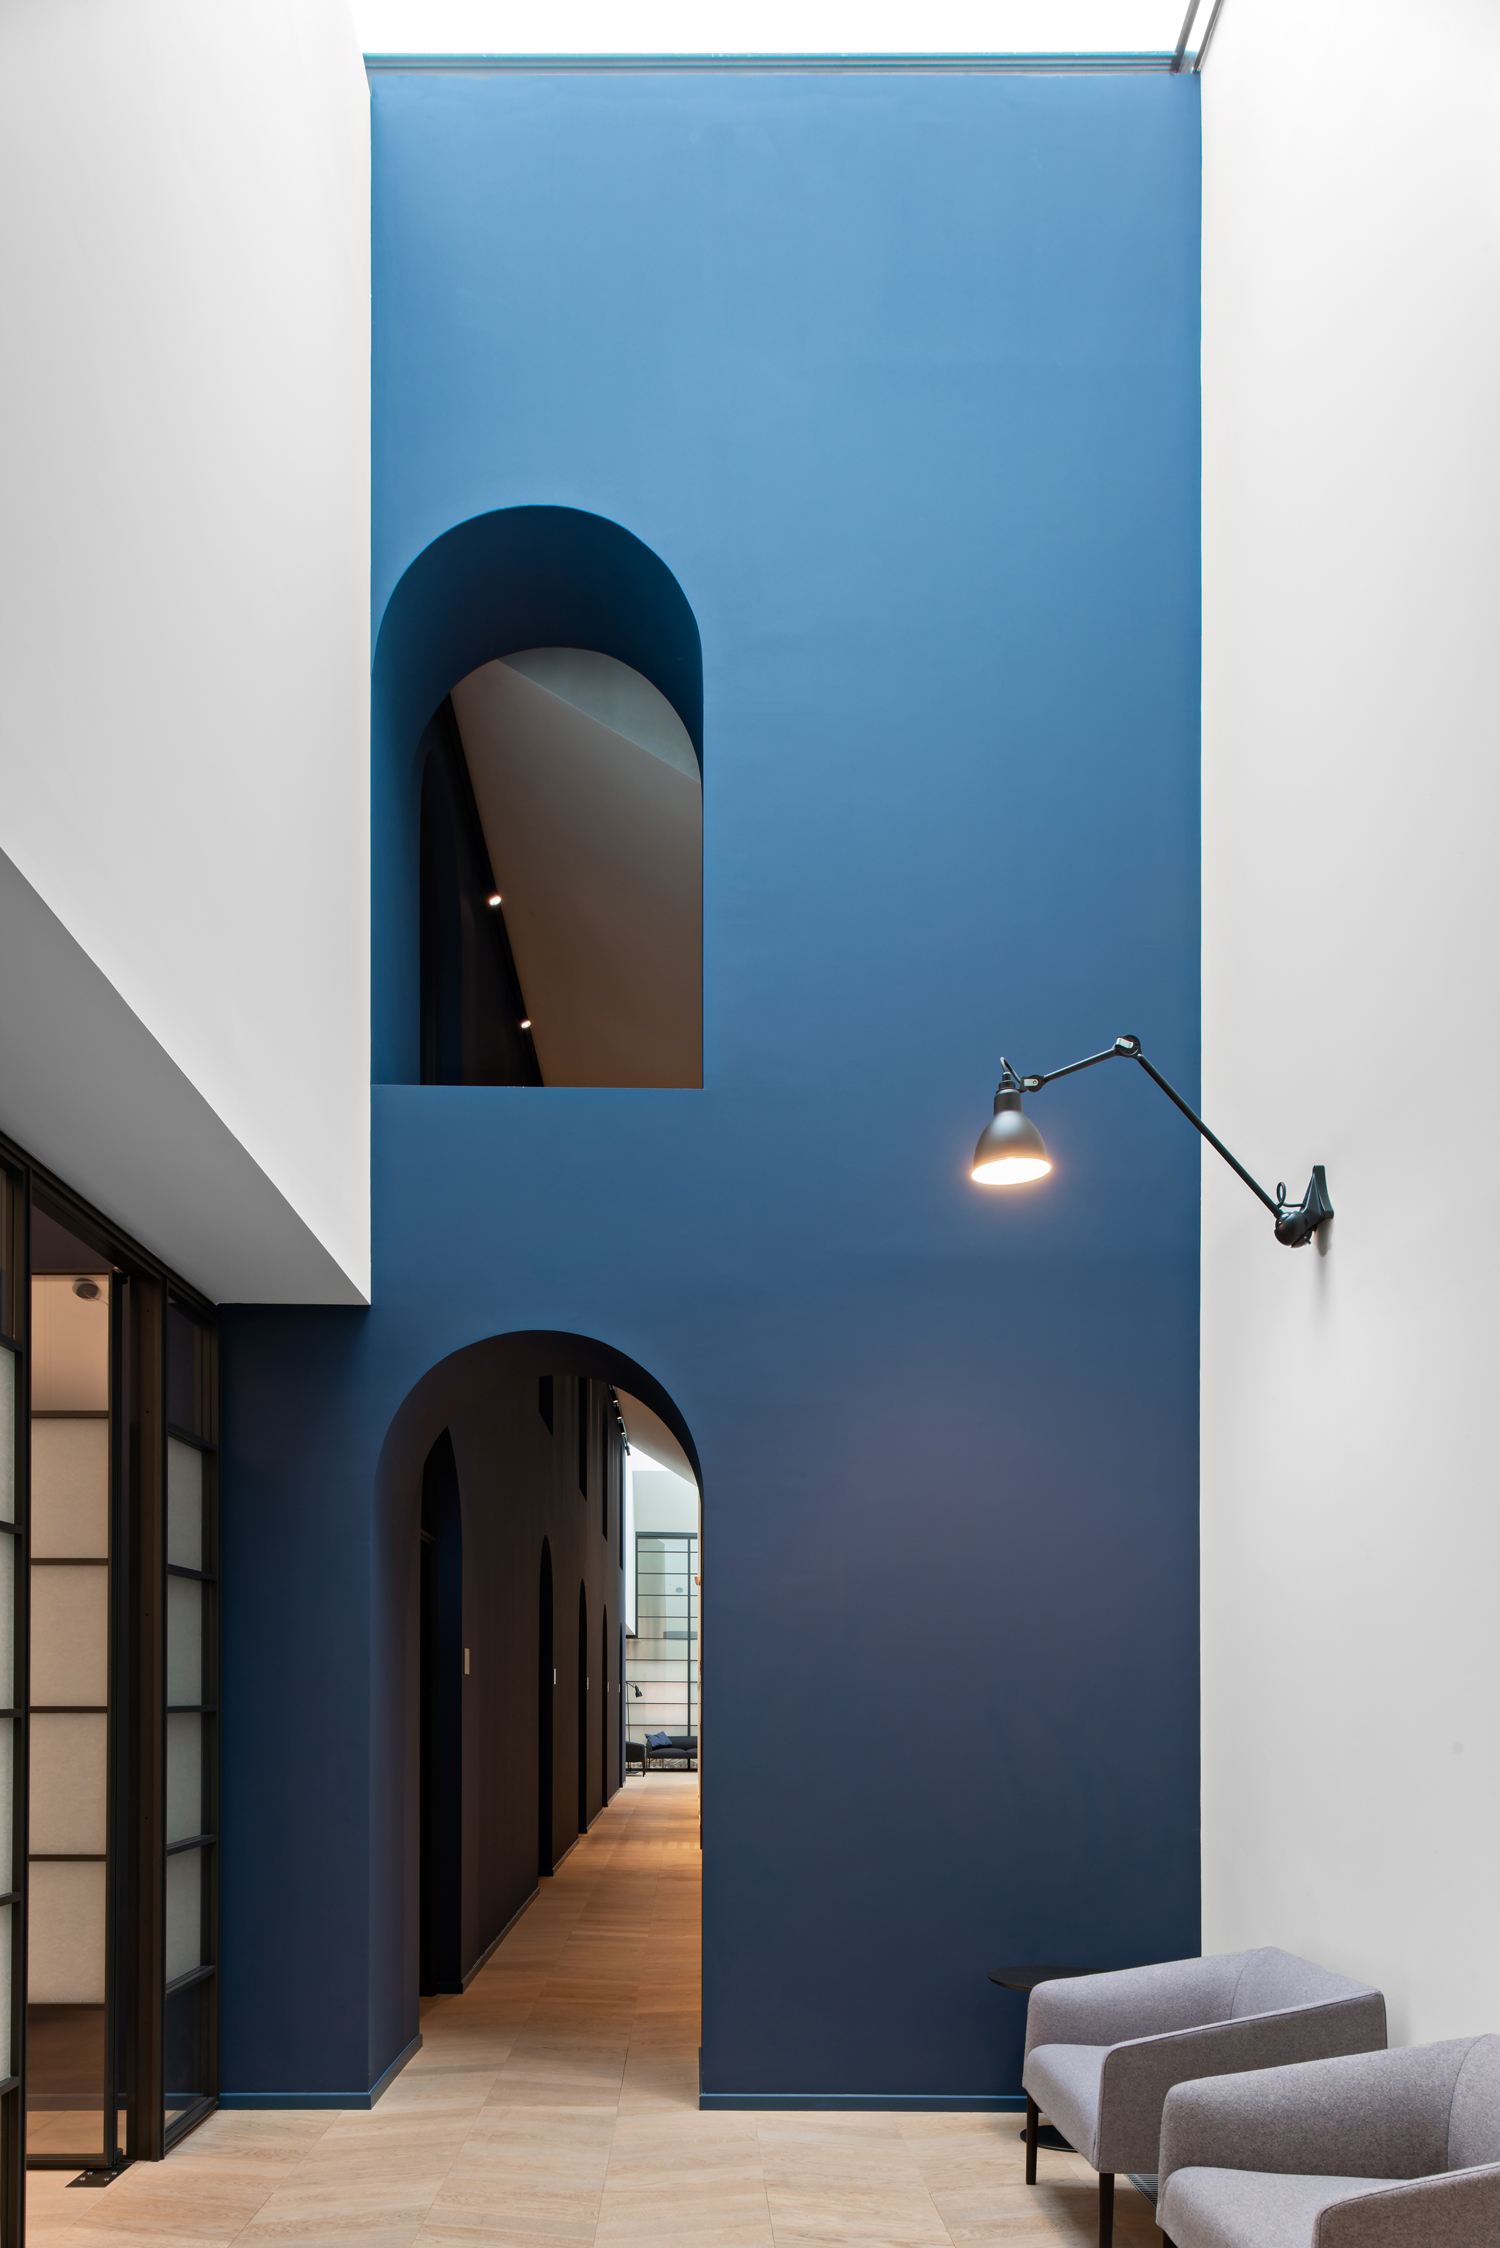 Giacomo Albo, courtesy GBPA Architects